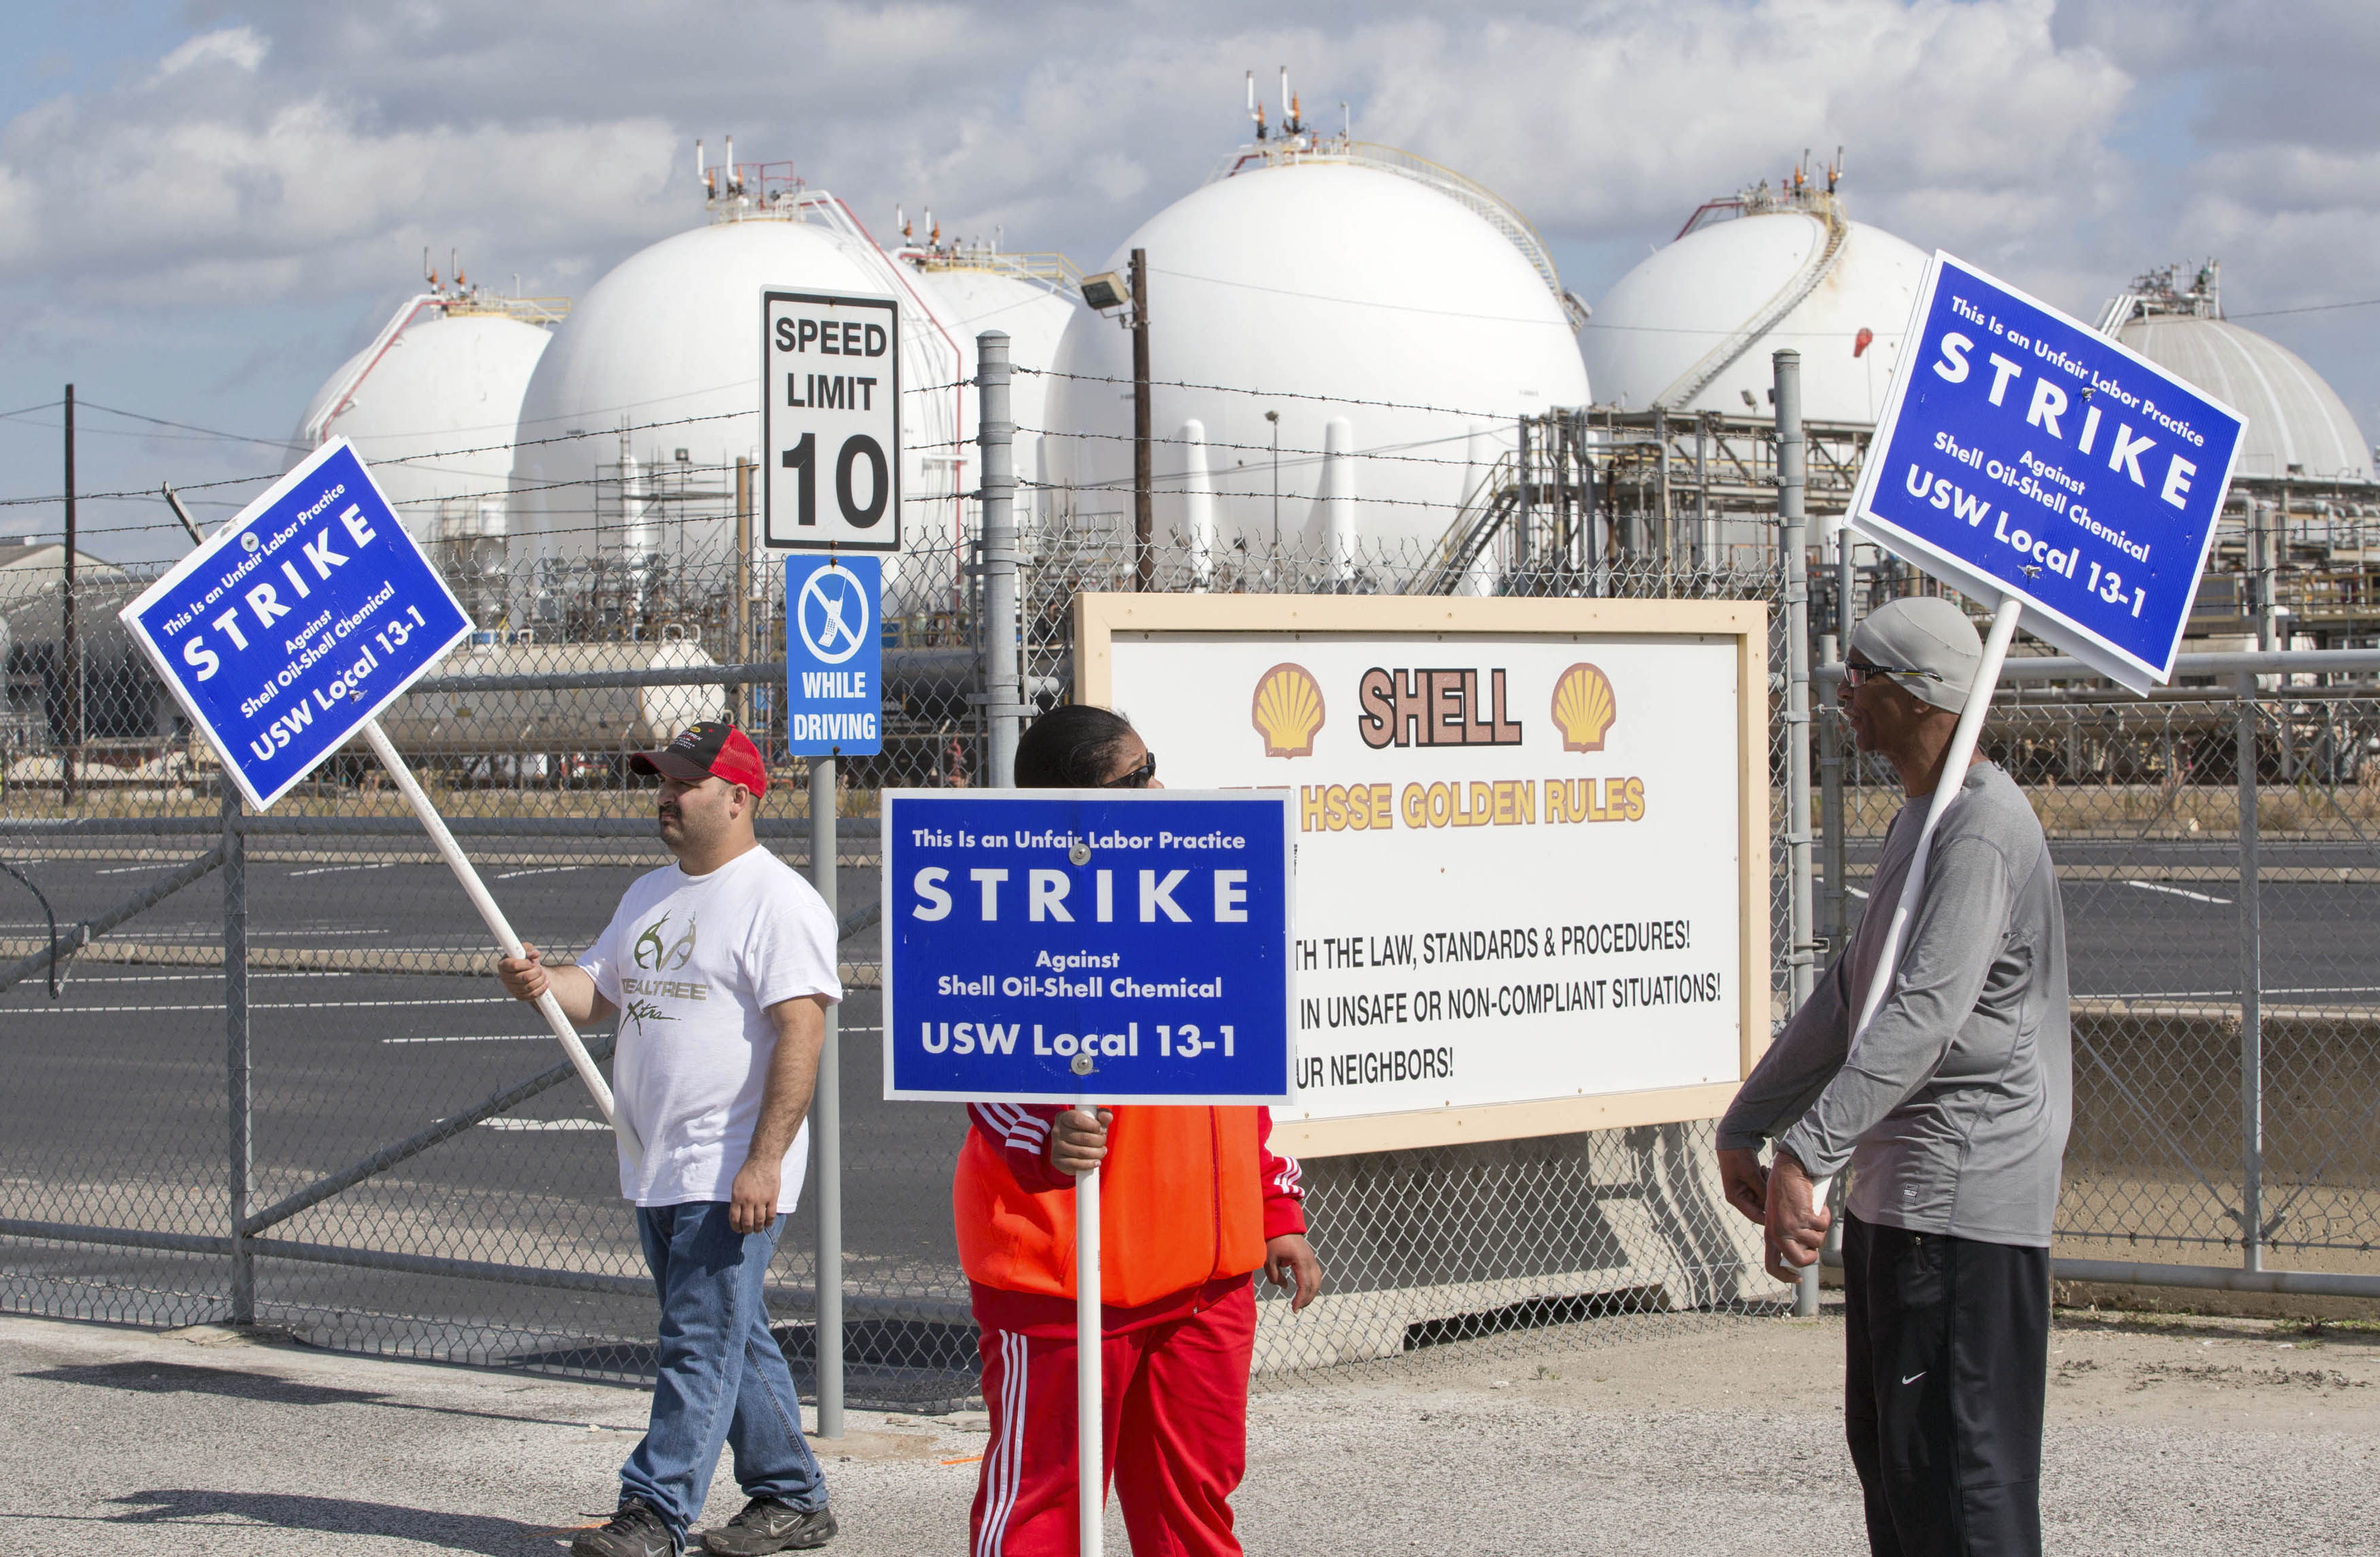 Workers from the United Steelworkers (USW) union walk a picket line outside the Shell Oil Deer Park Refinery in Deer Park, Texas on Feb. 1, 2015.